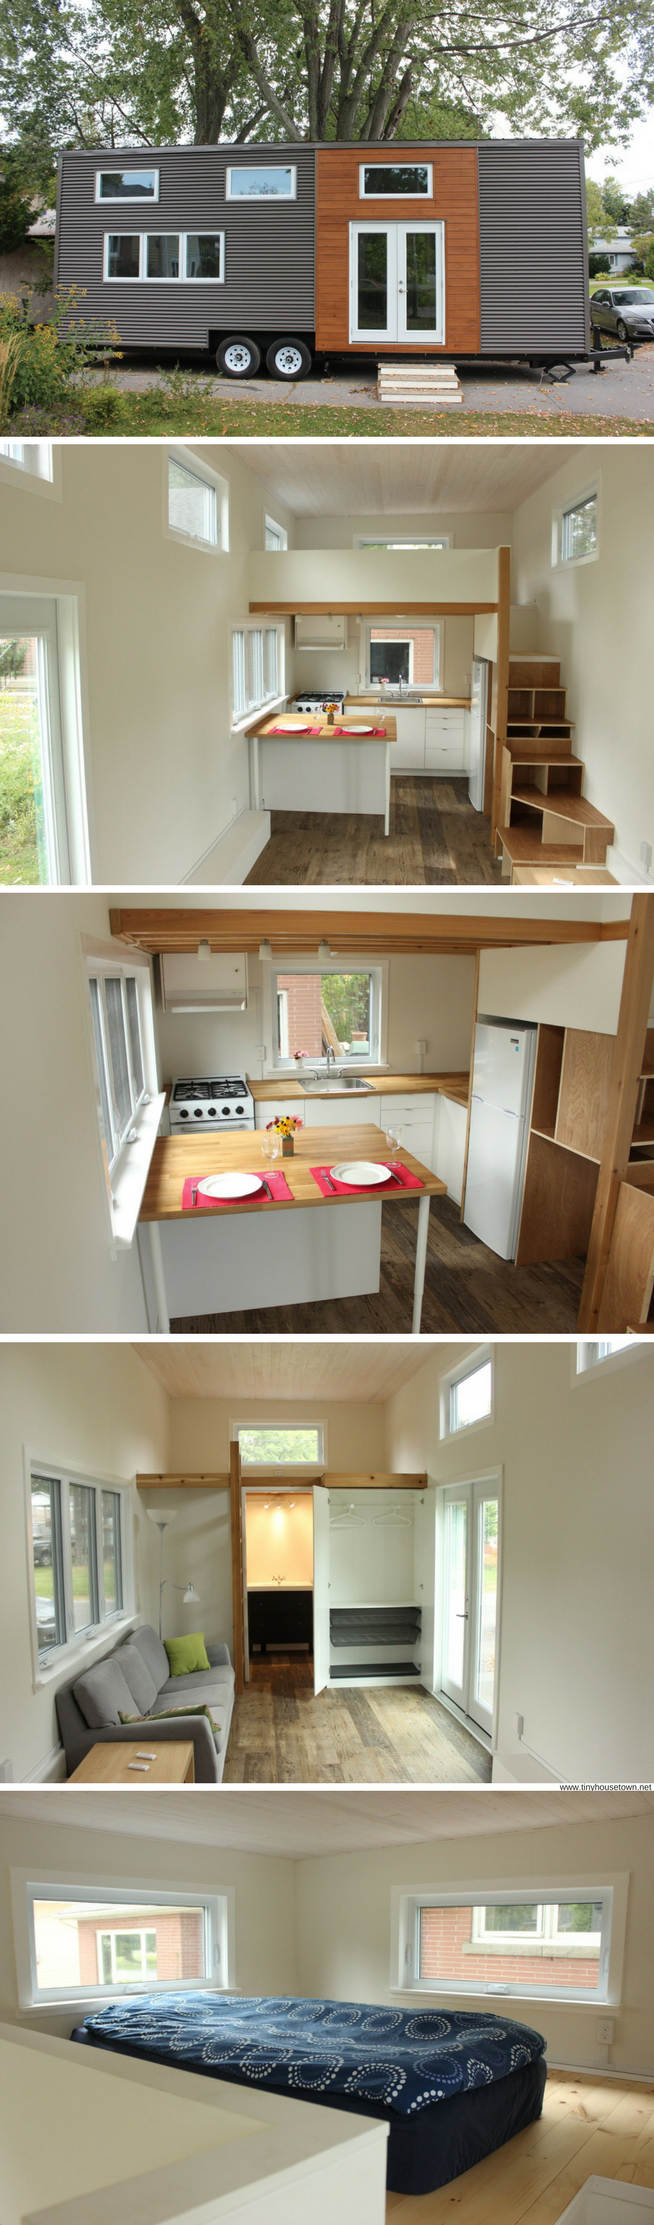 A Modern Tiny House For Sale In Kingston On Diy Tiny House Tiny House Nation Modern Tiny House